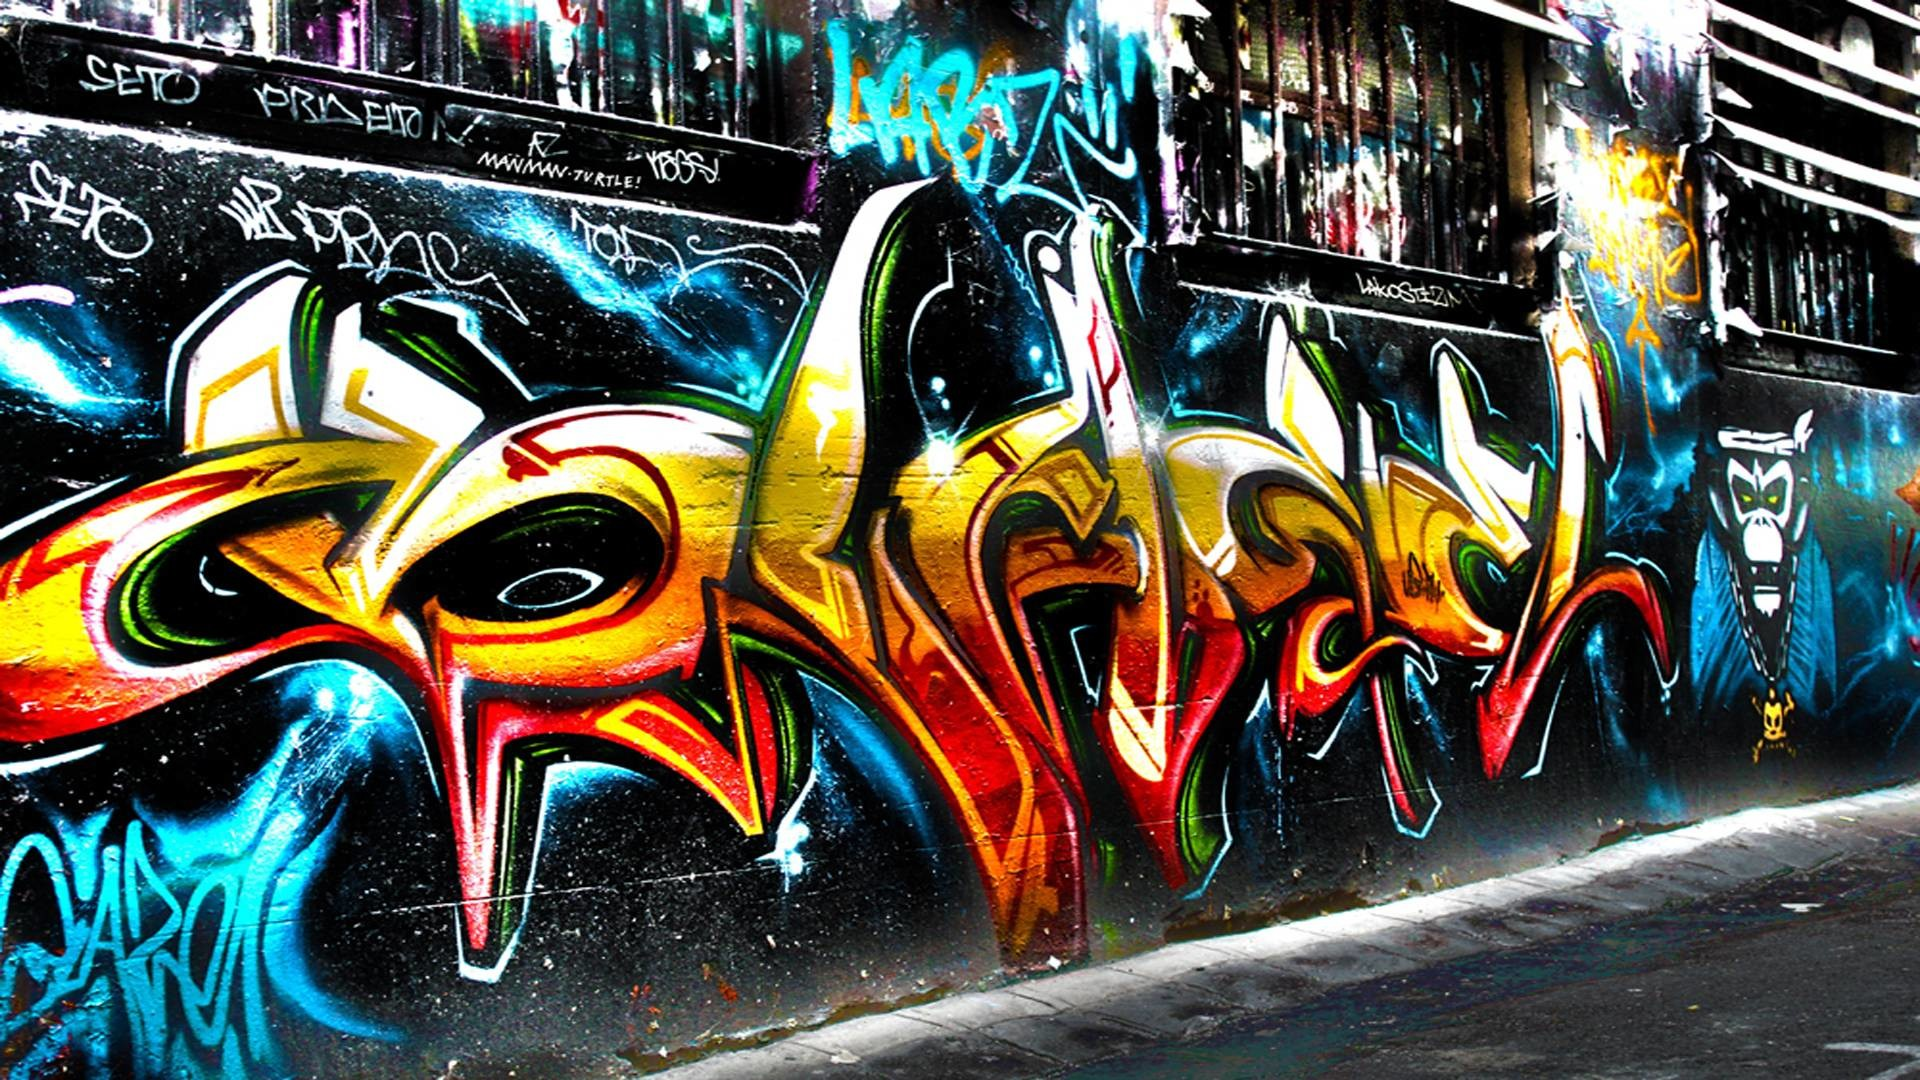 220621 graffiti wallpaper HD free wallpapers backgrounds images .